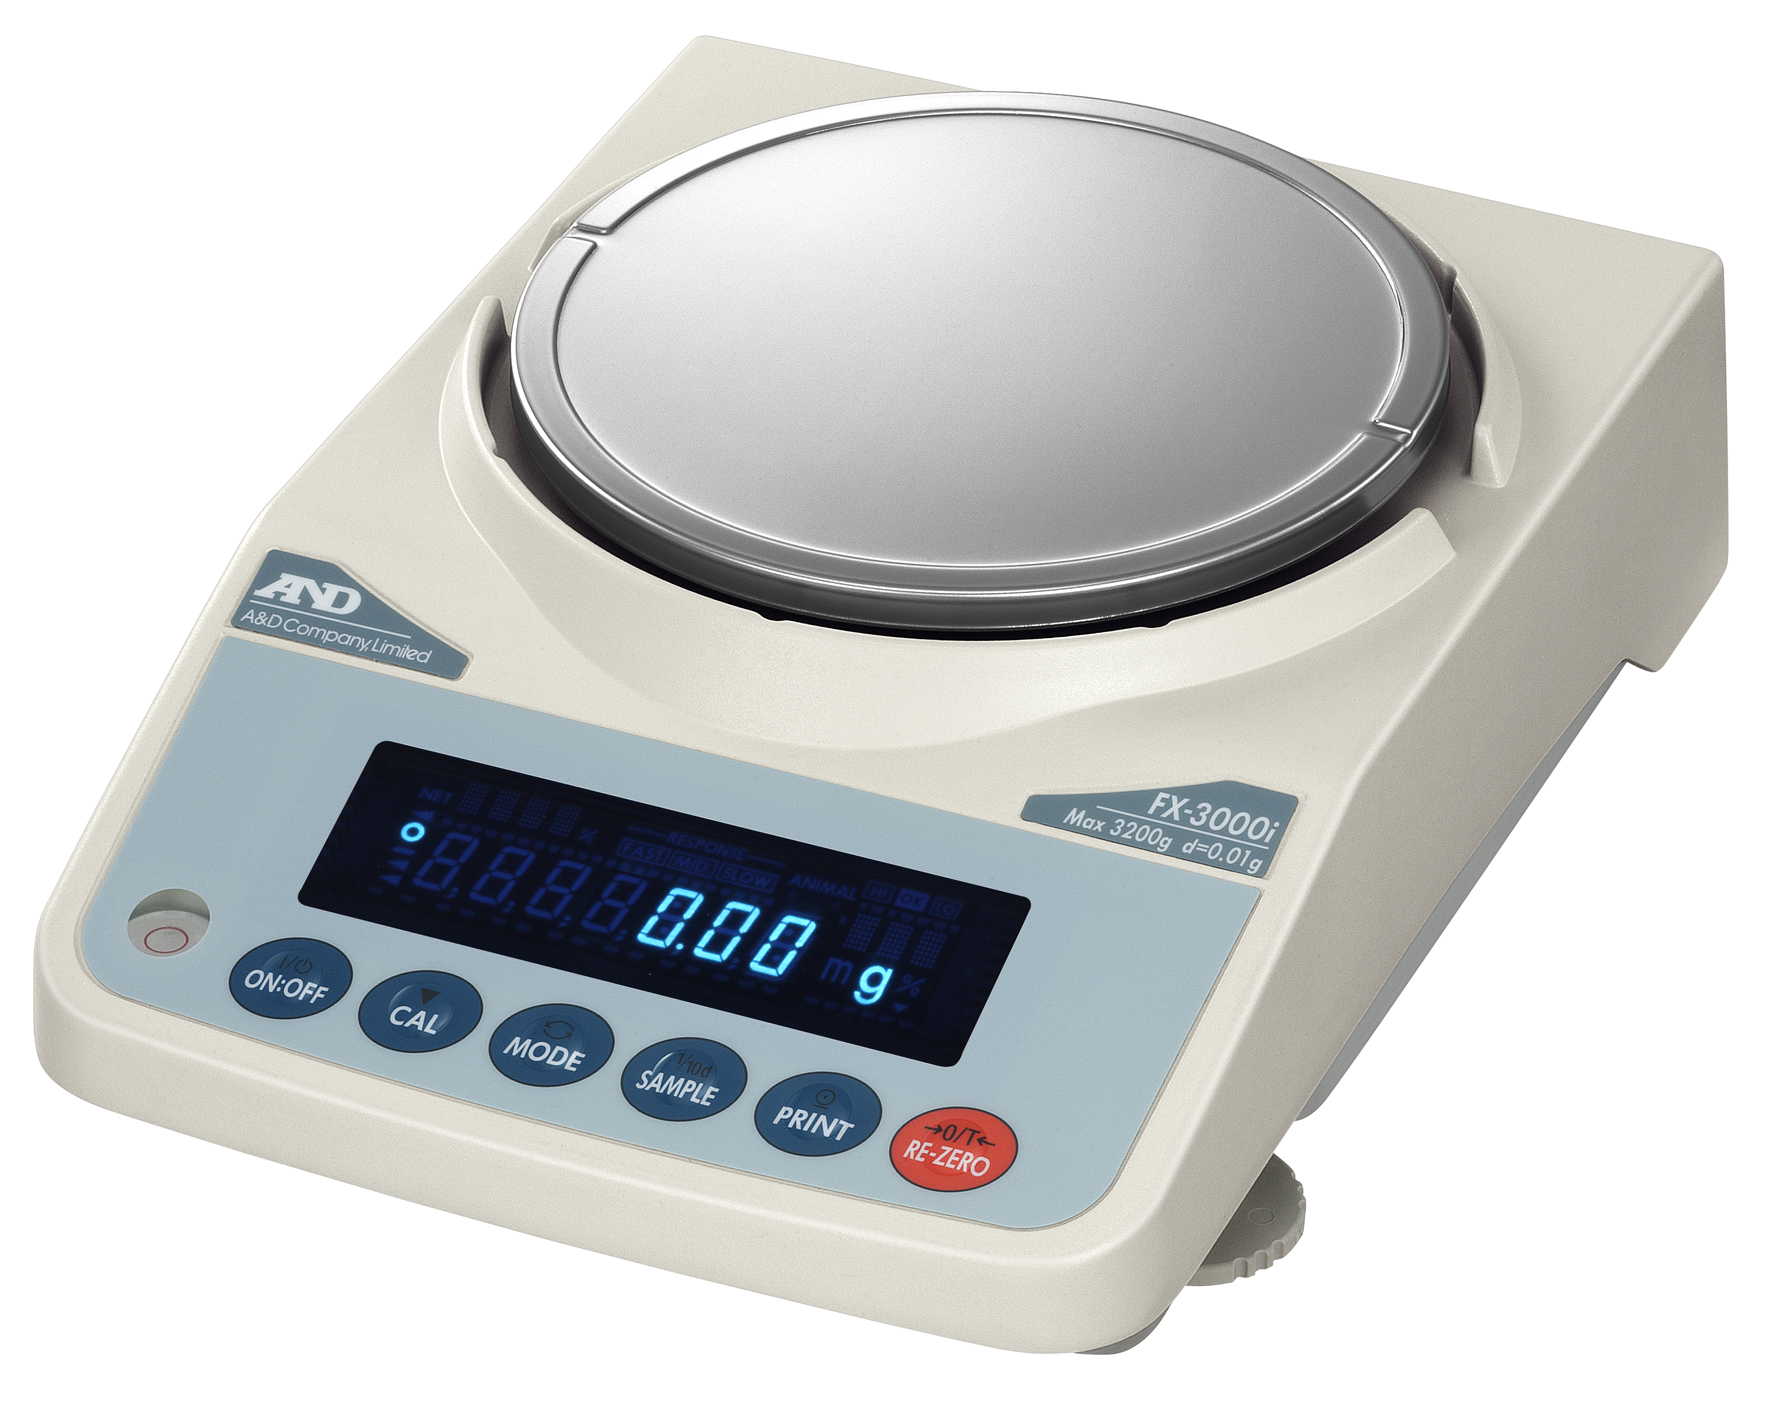 A&D FX-i-WP / FZ-i-WP SERIES IP65 DUST AND WATERPROOF FOOD BALANCE